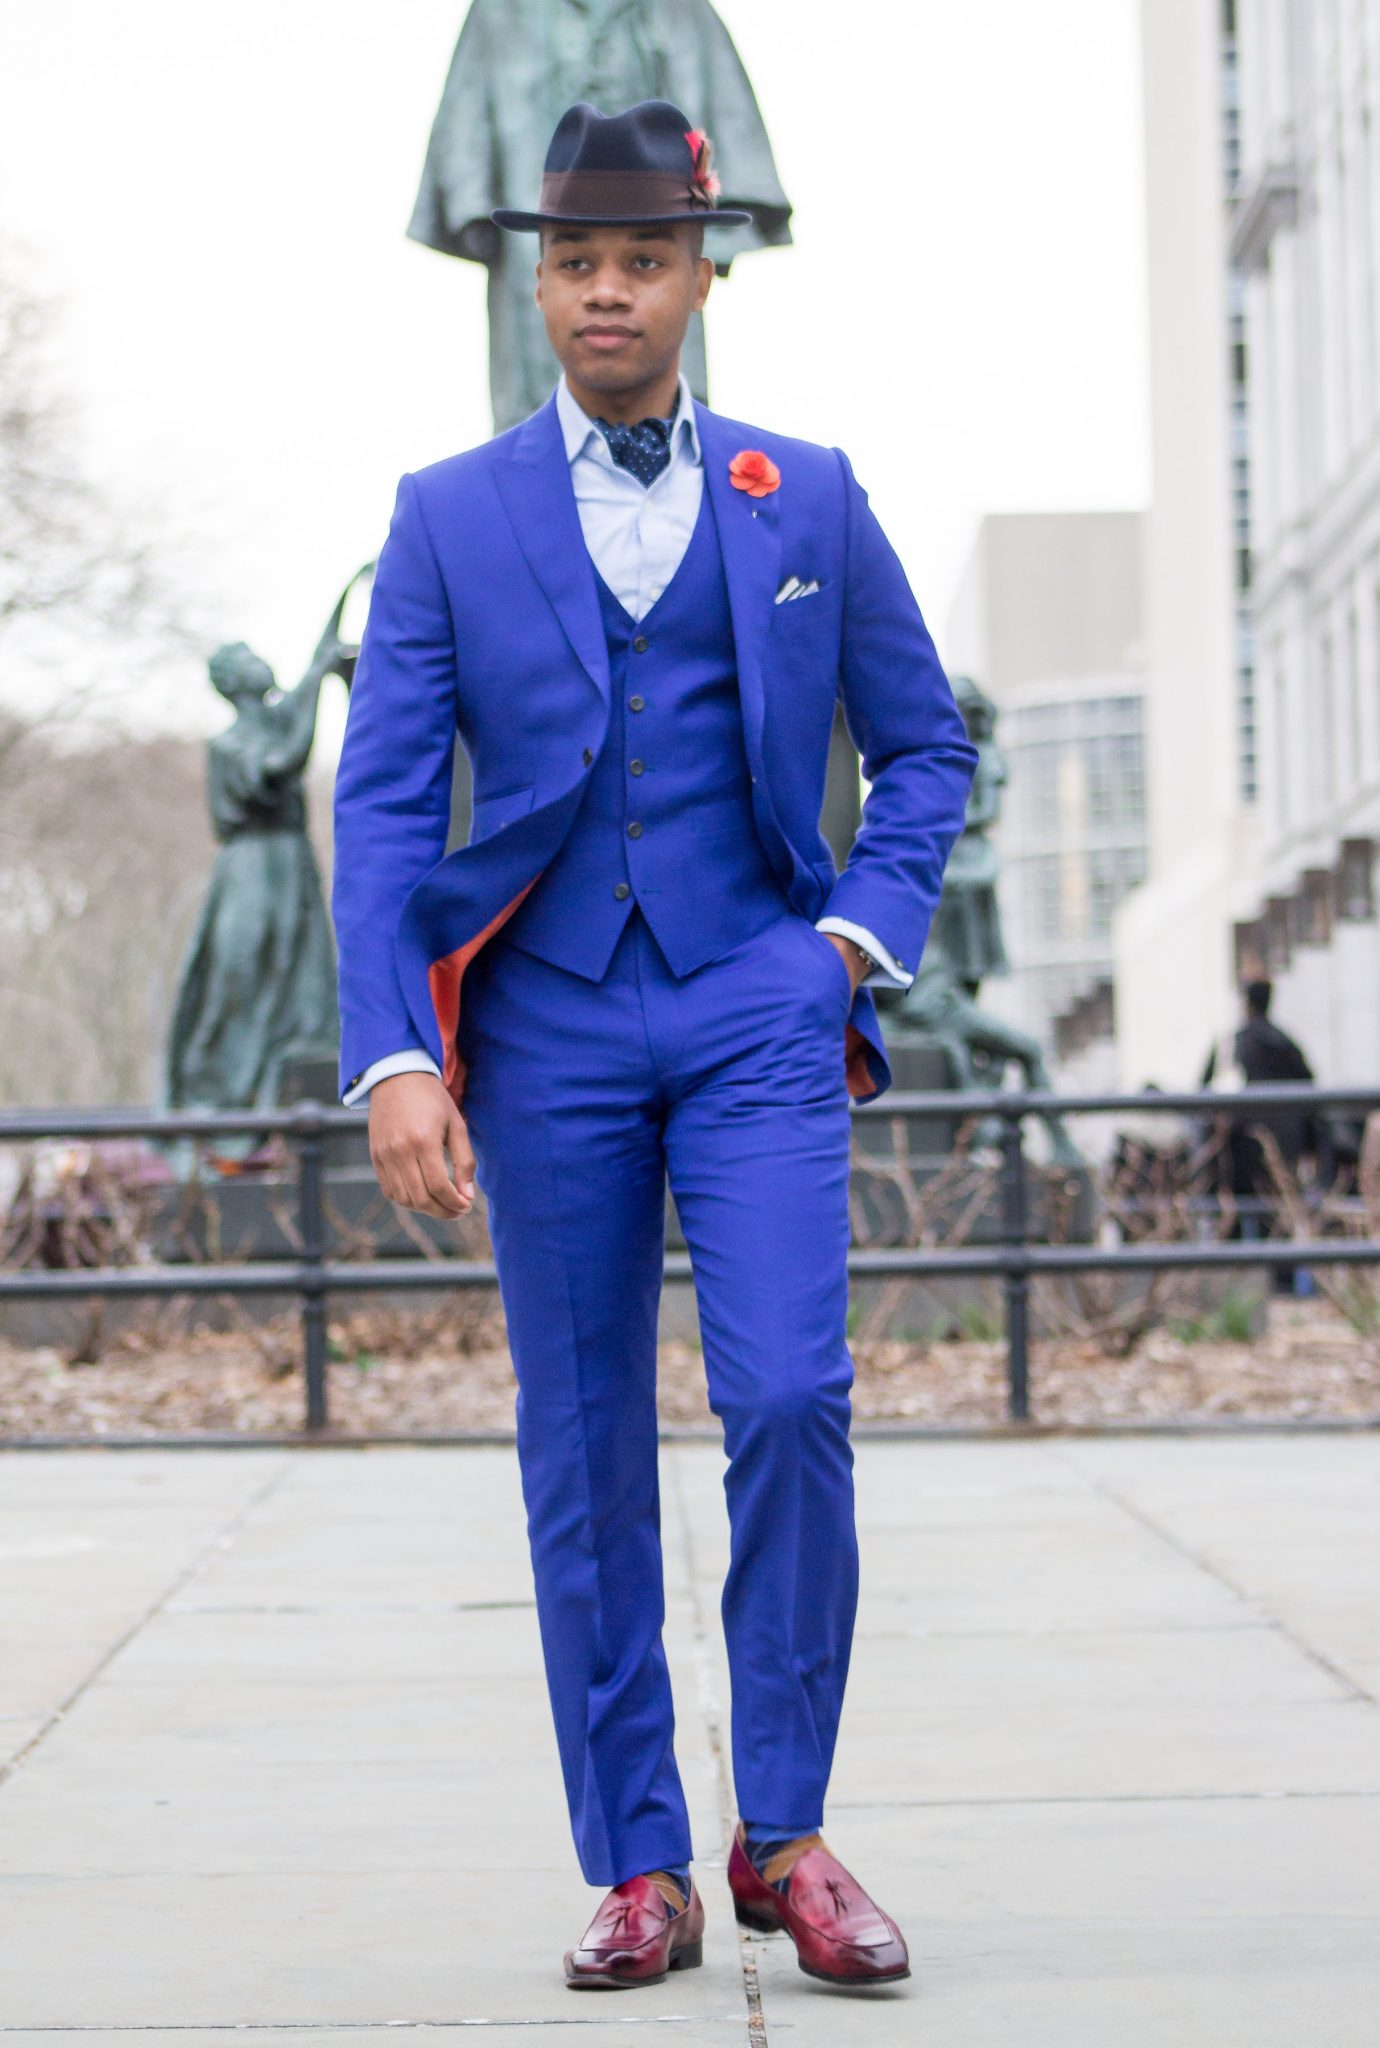 Tyron Cutner-Well Dressed Academy-Young Entrepreneur Spotlight-2